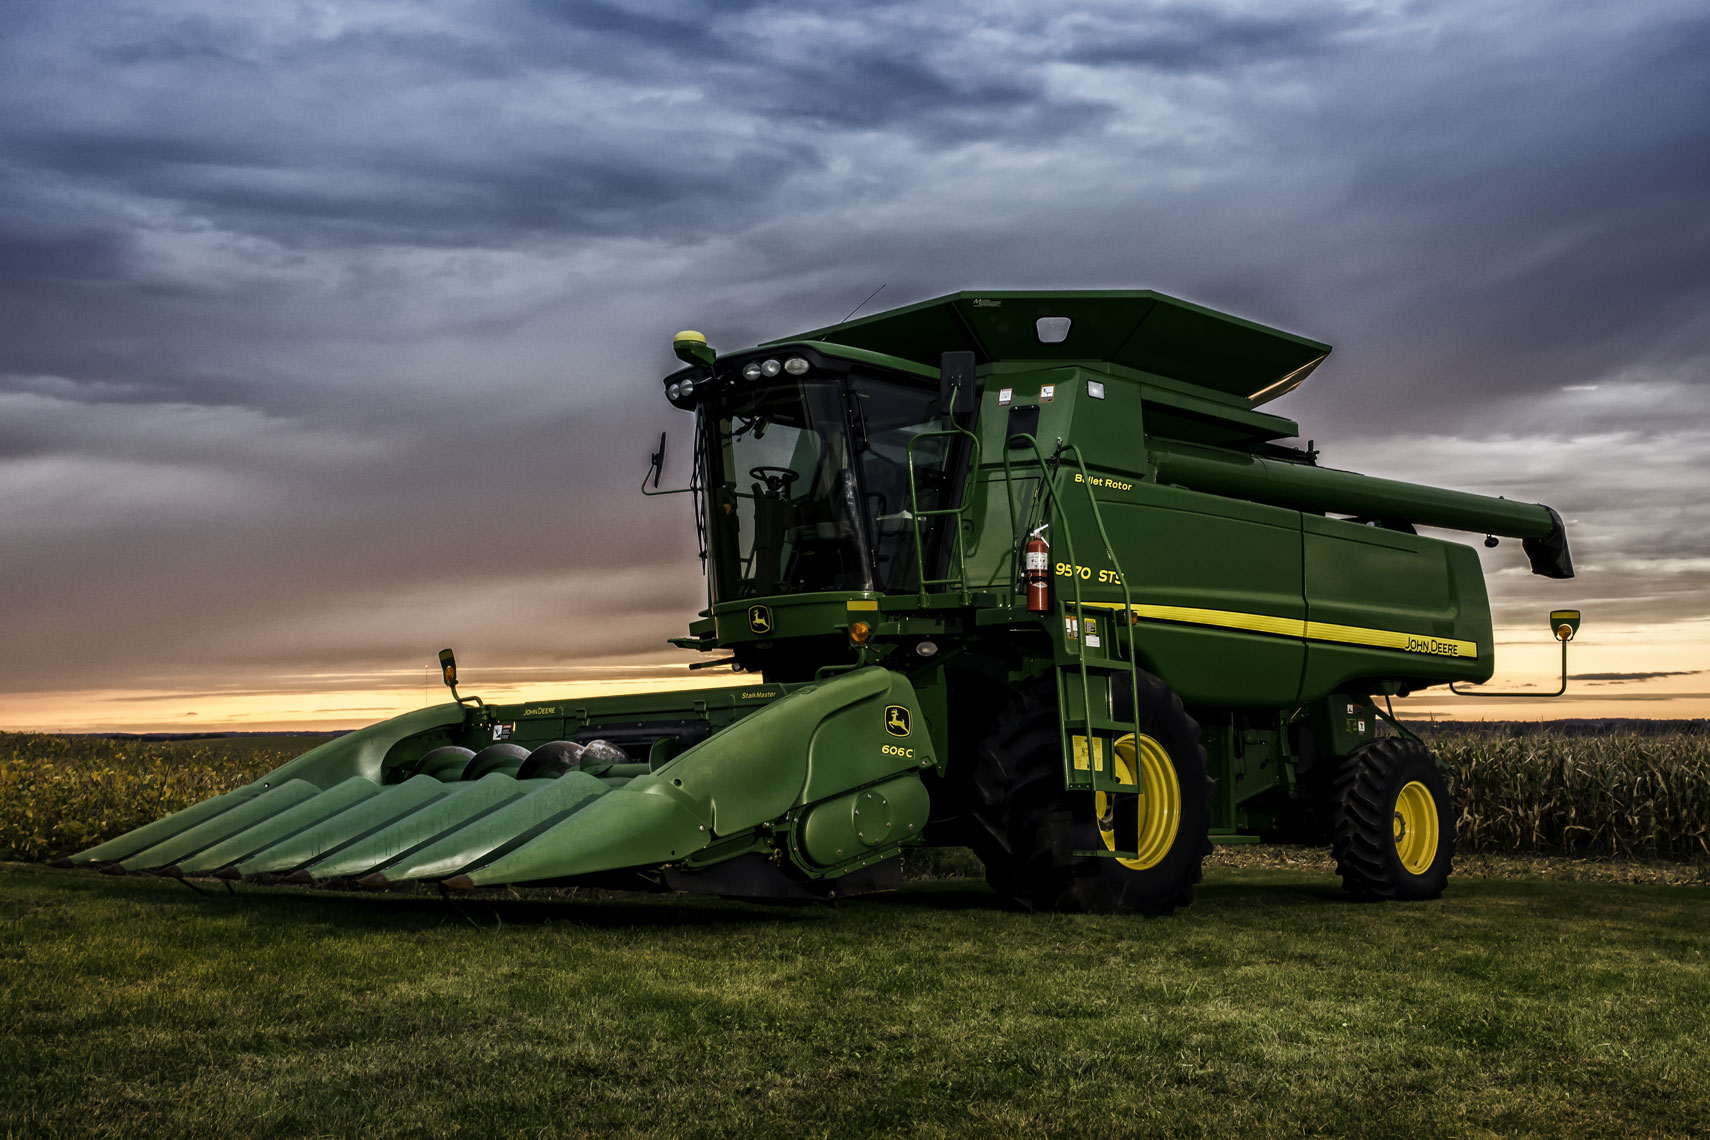 Big John Deer/harvesting/sunset/corn field/agriculture photography